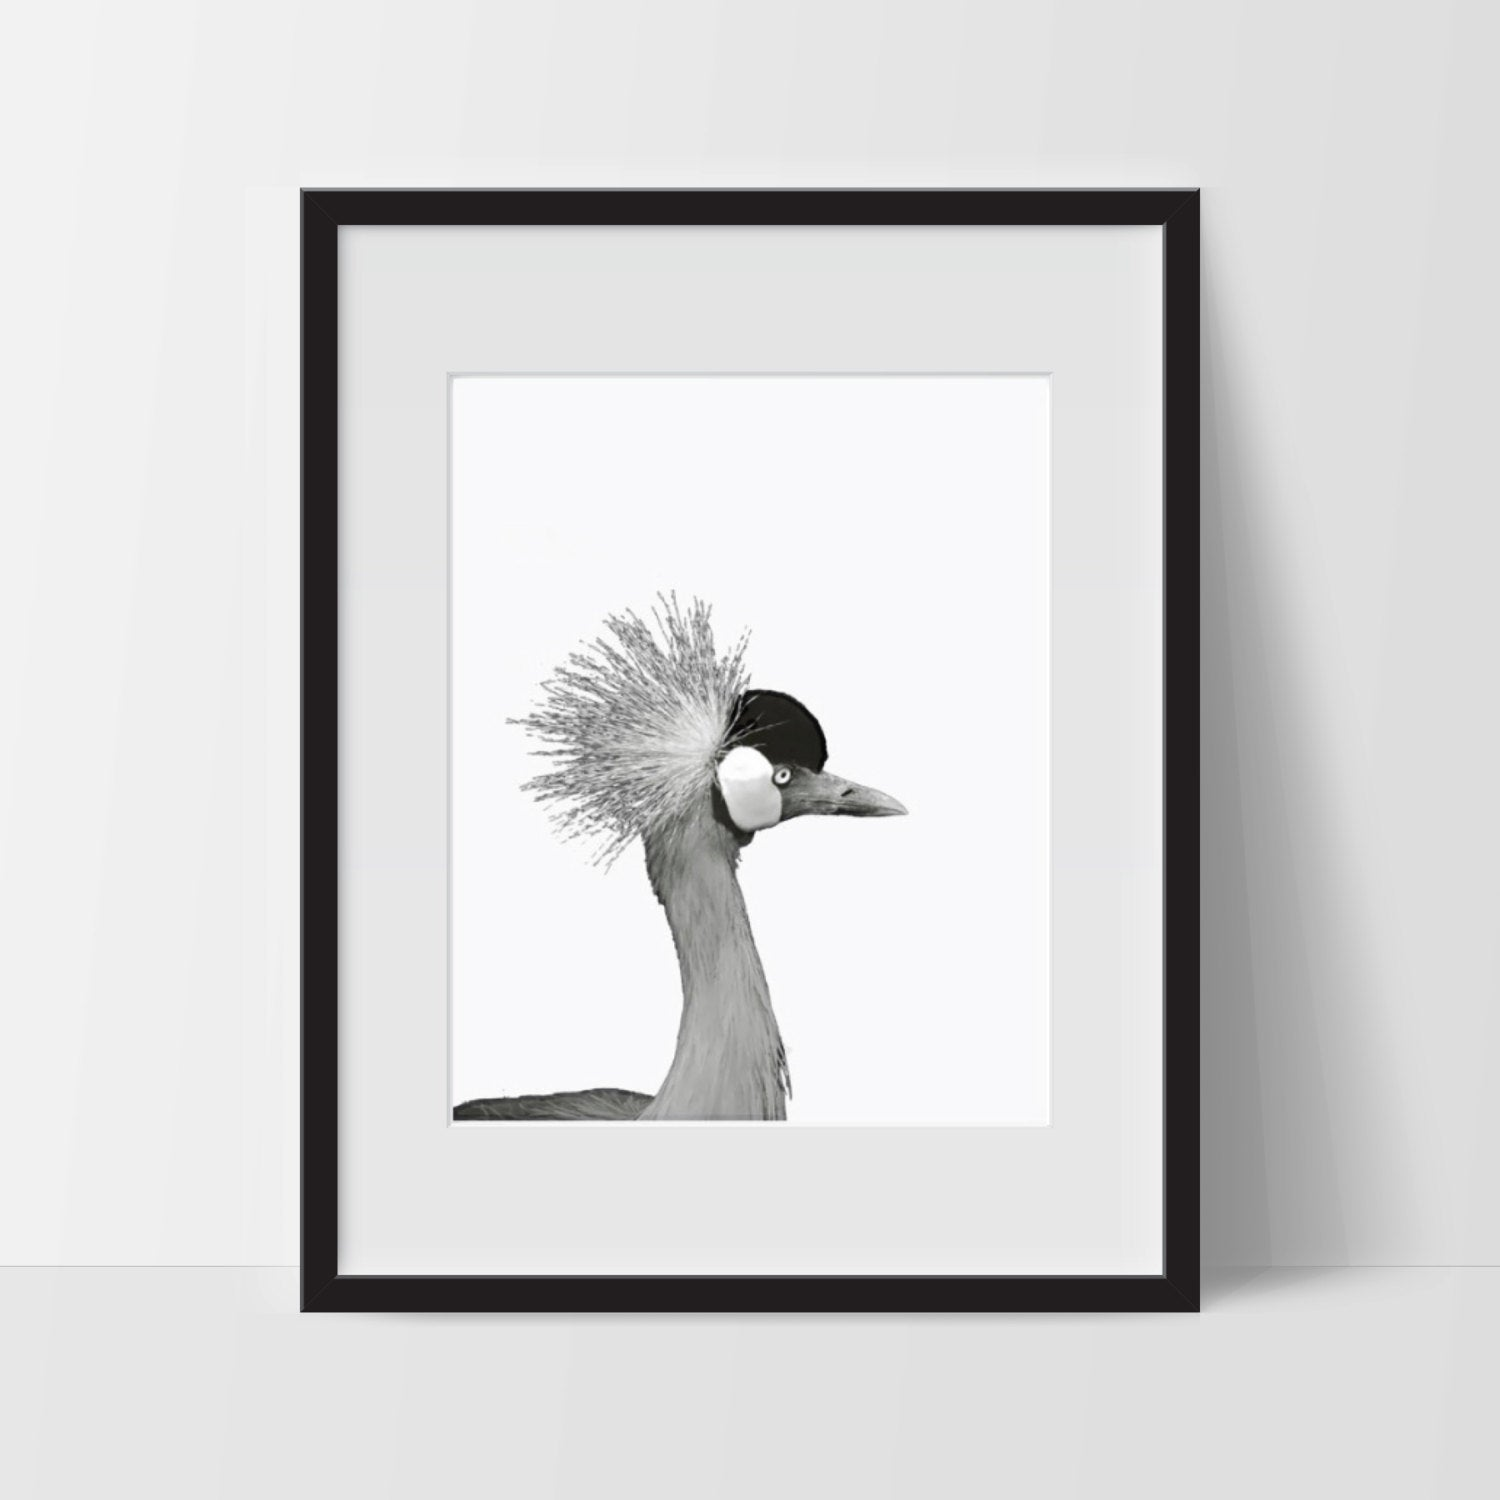 Art Print, Dramatic Bird Art, Printable, Digital Print, Bird Print, Wall Art, 8x10, Decorations, Bird, Black and White, Art